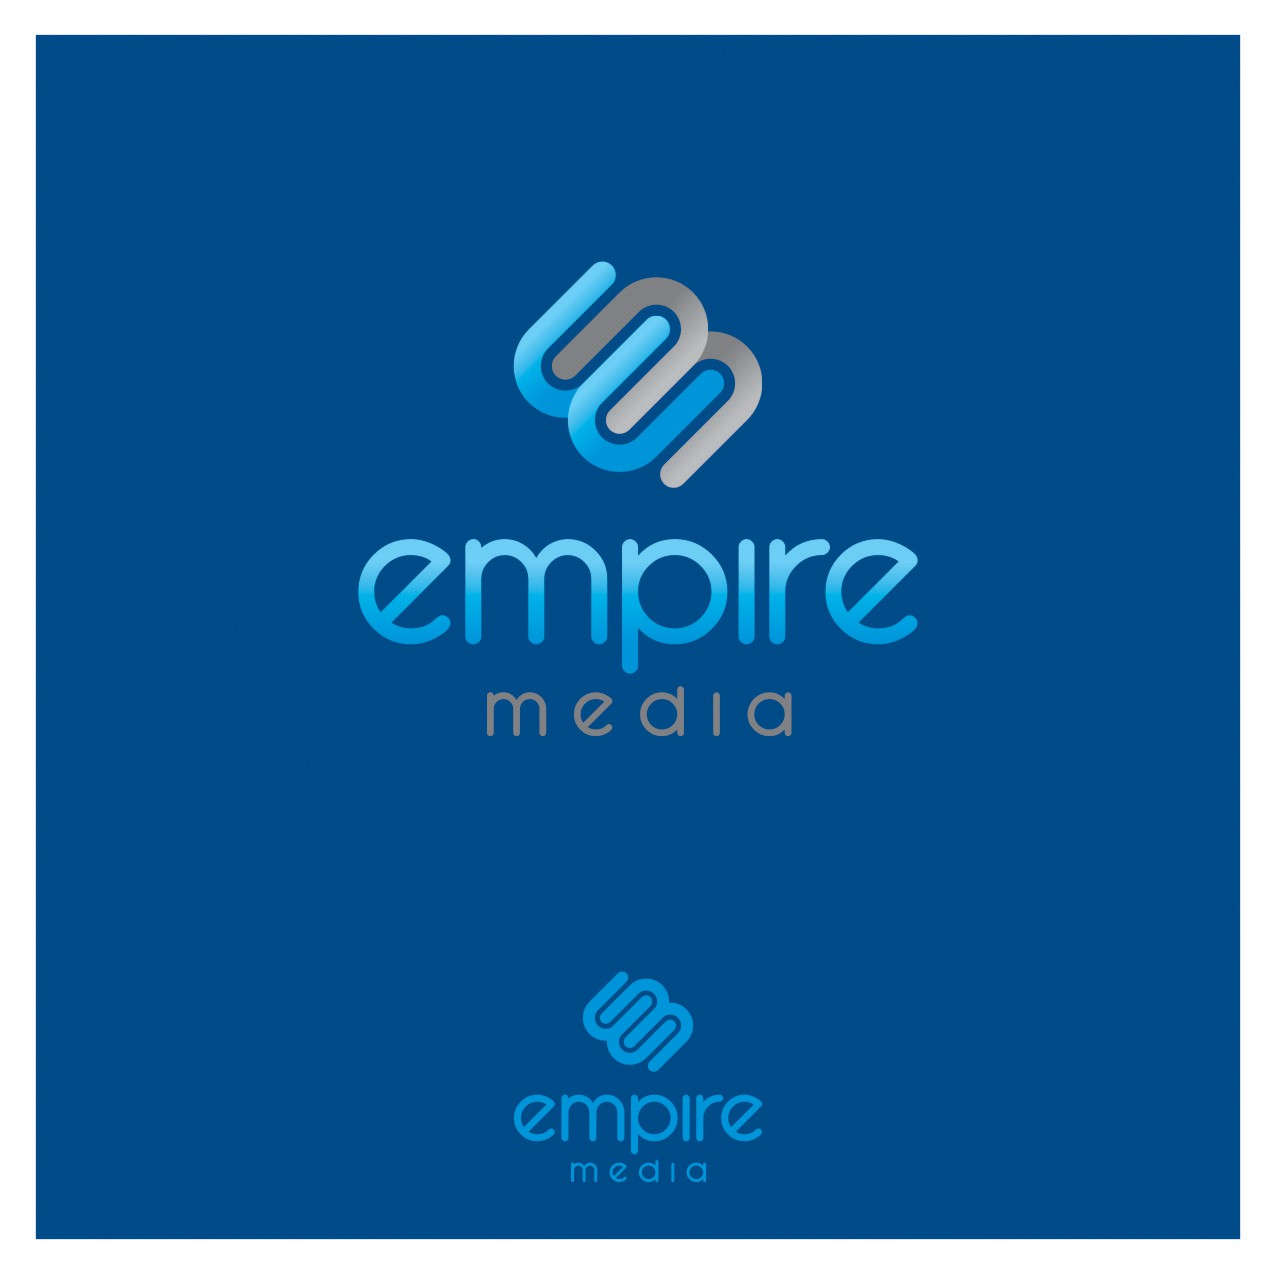 Help Empire Media with a new logo